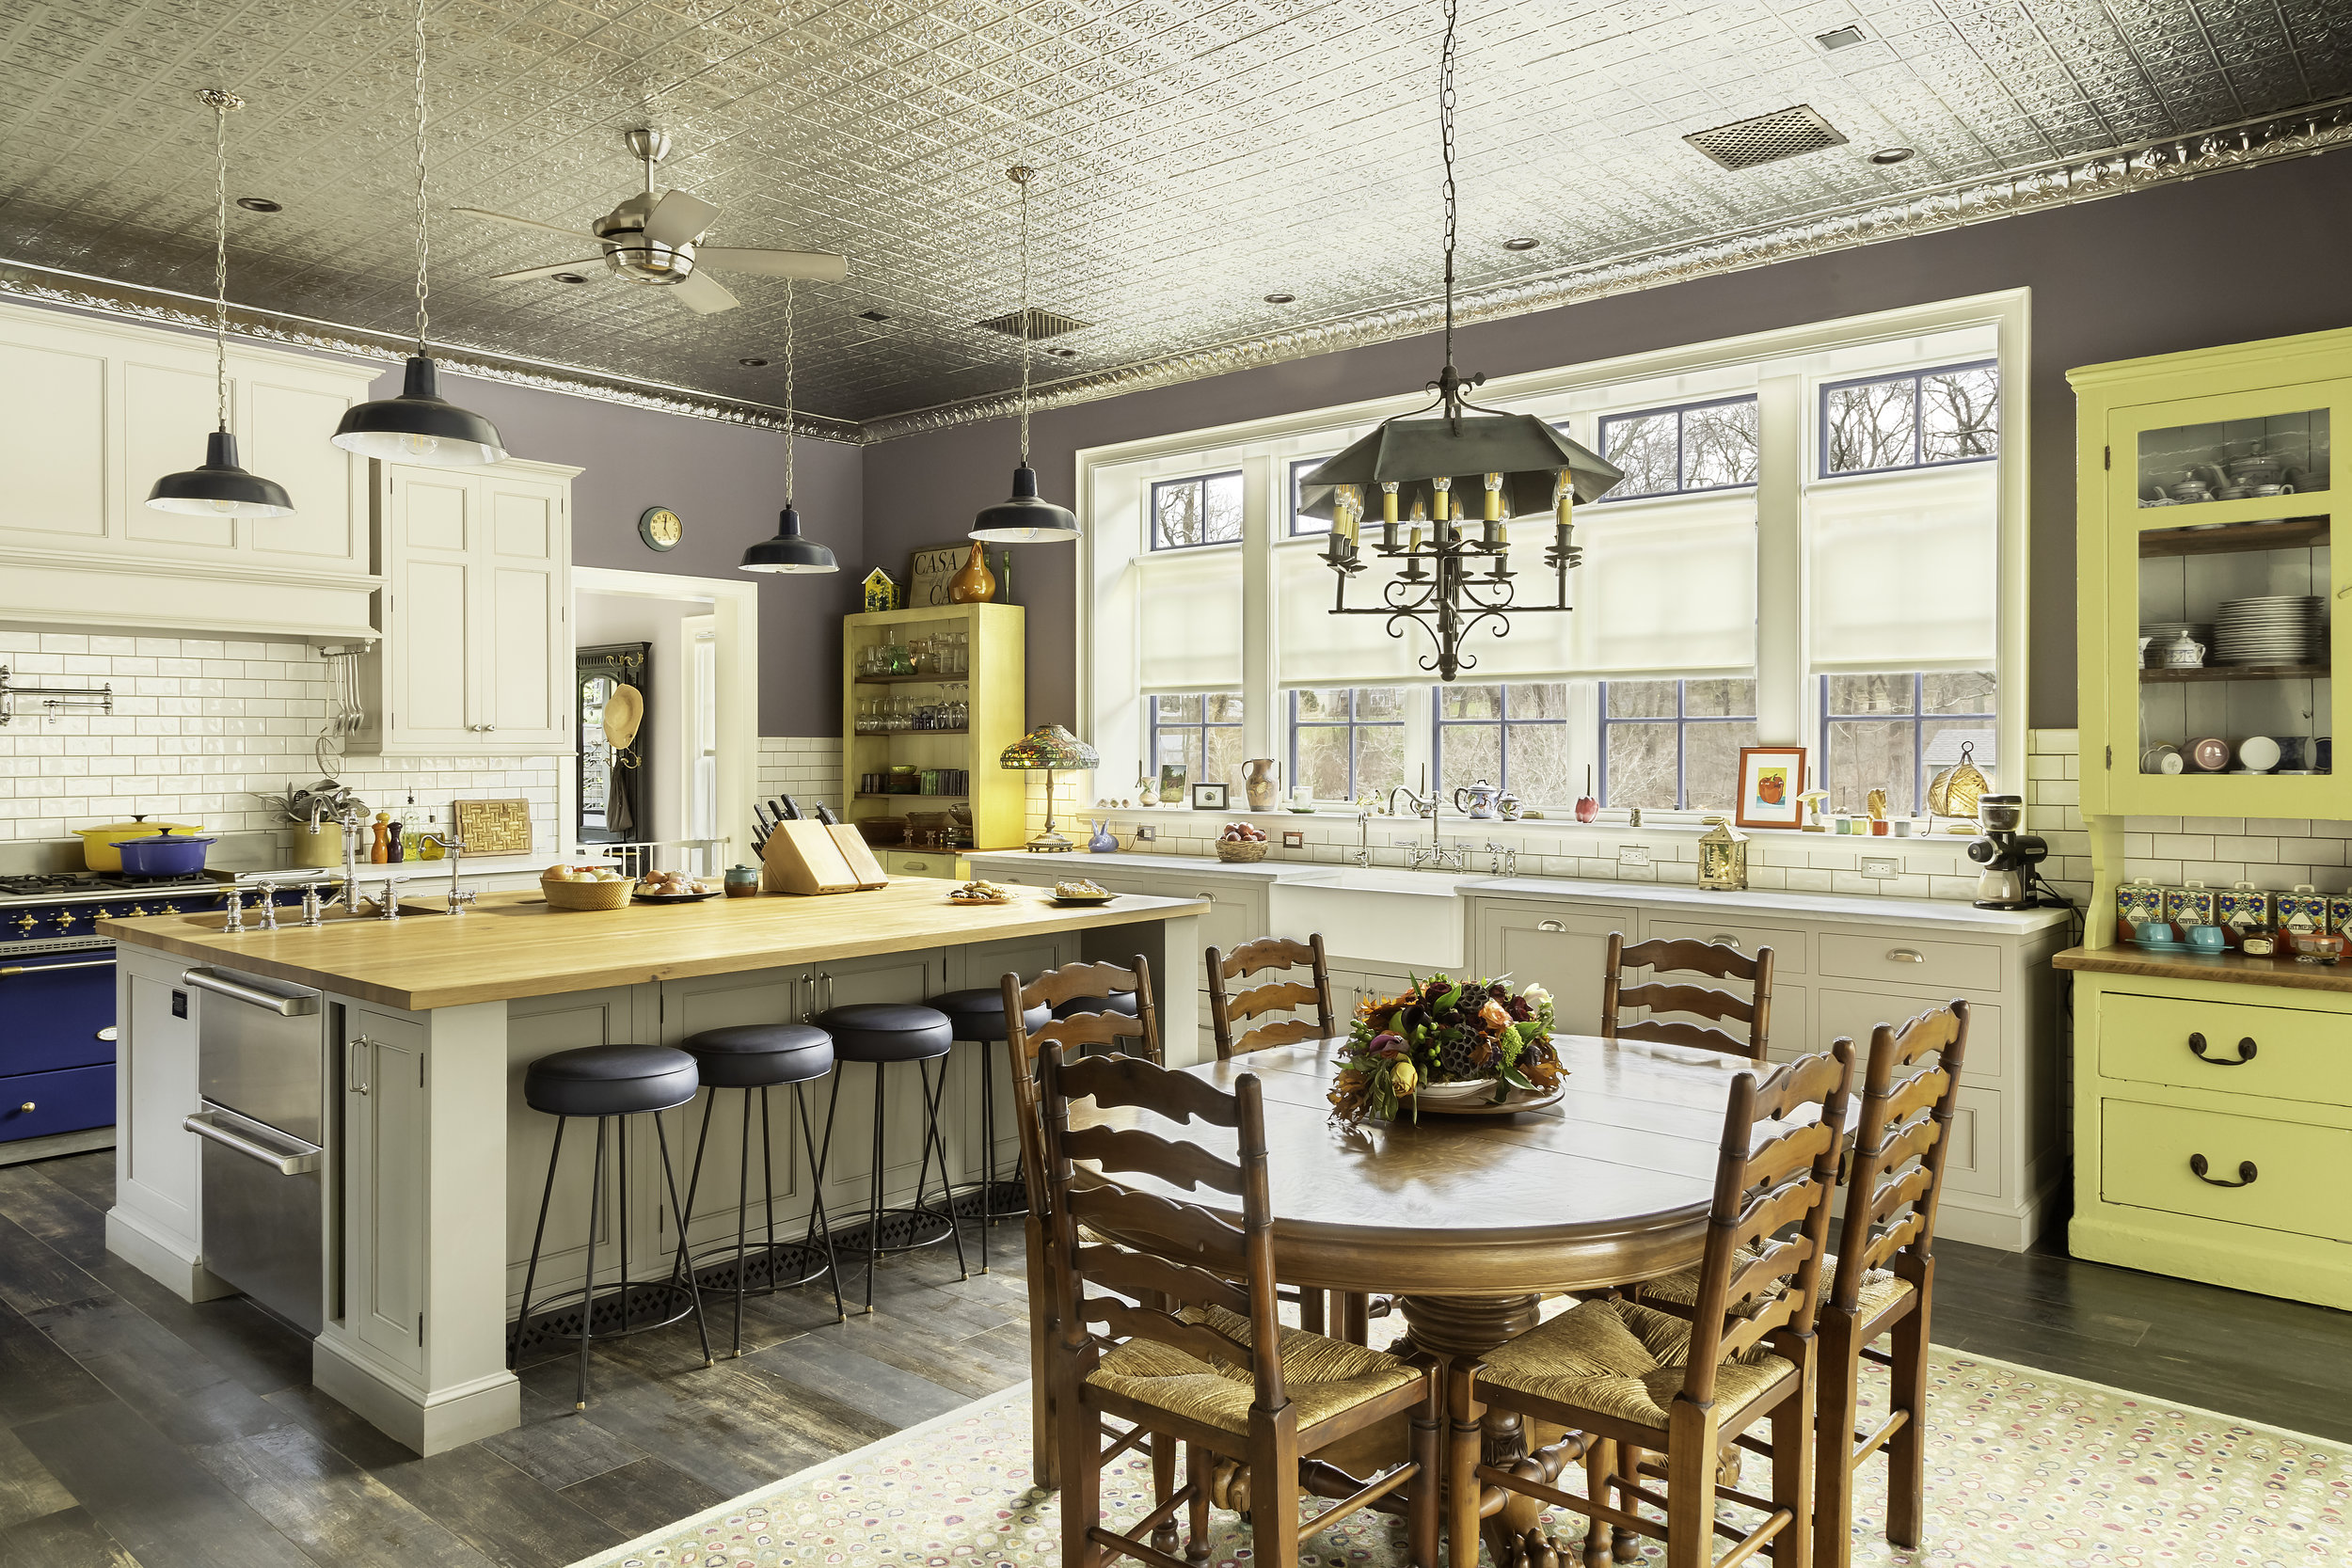 Modern version of a country kitchen